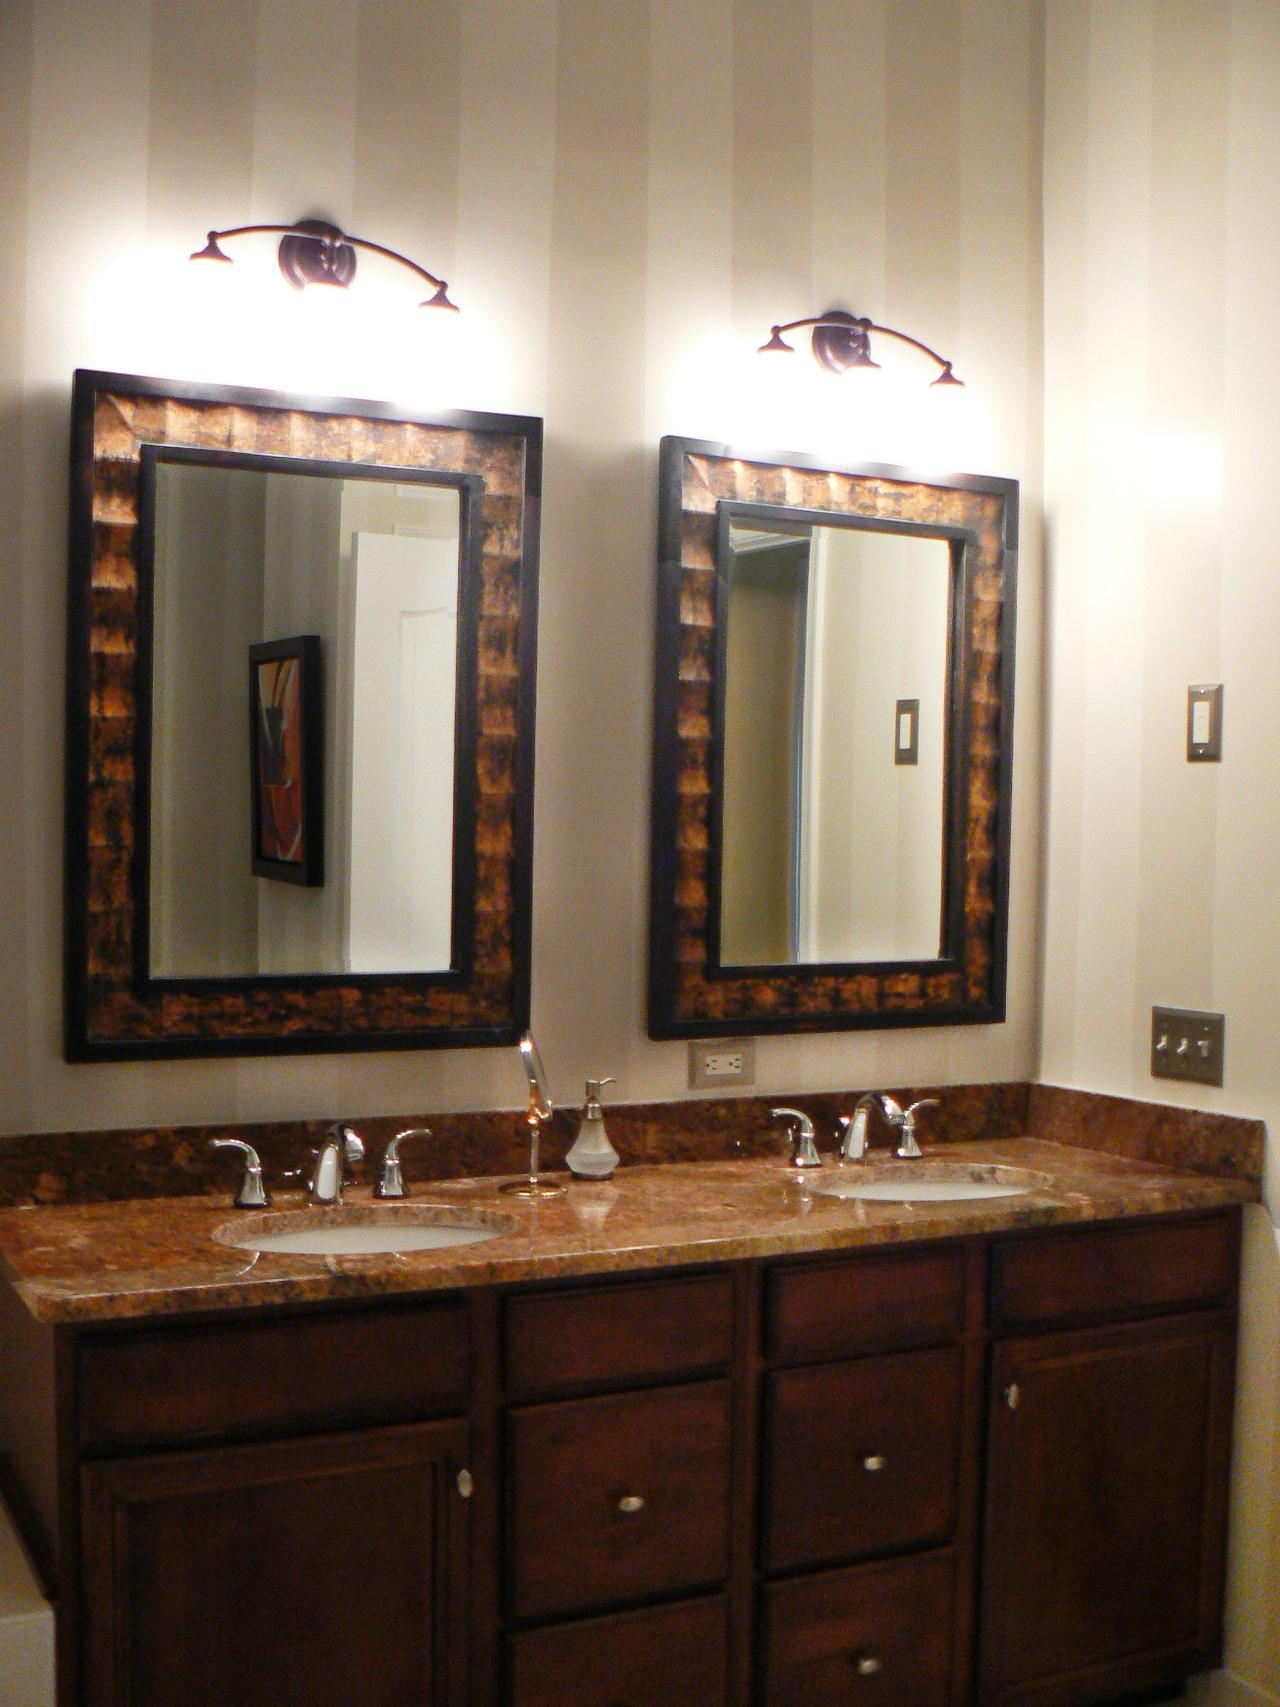 Bathroom Vanity Mirrors | Hgtv Throughout Bathroom Cabinets Mirrors (Image 9 of 20)